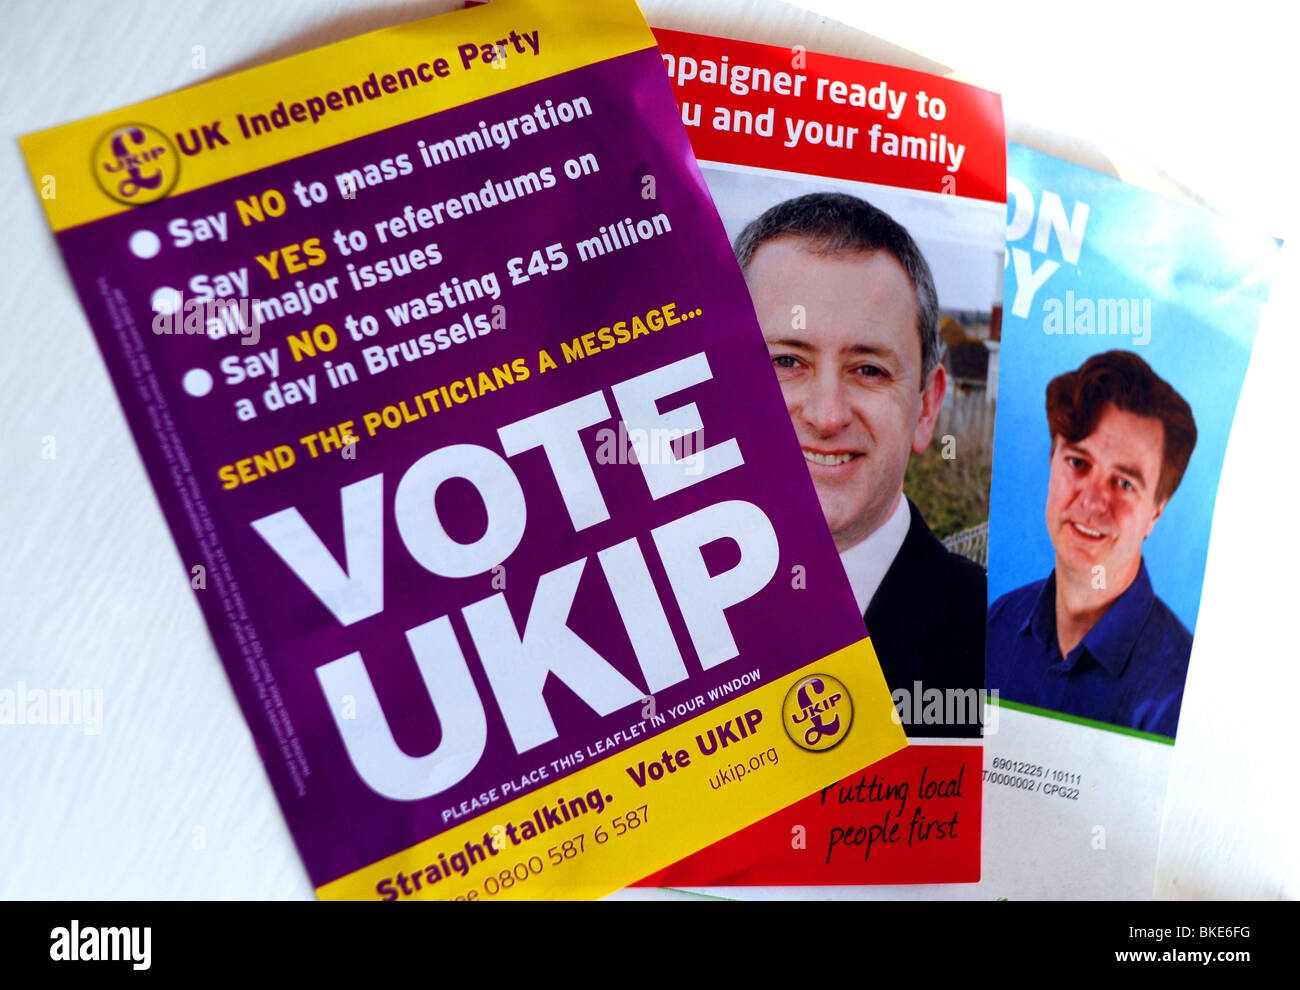 British General Election 2010 Leaflets For Labour Conservative And Ukip Uk  Political Parties - Stock Image